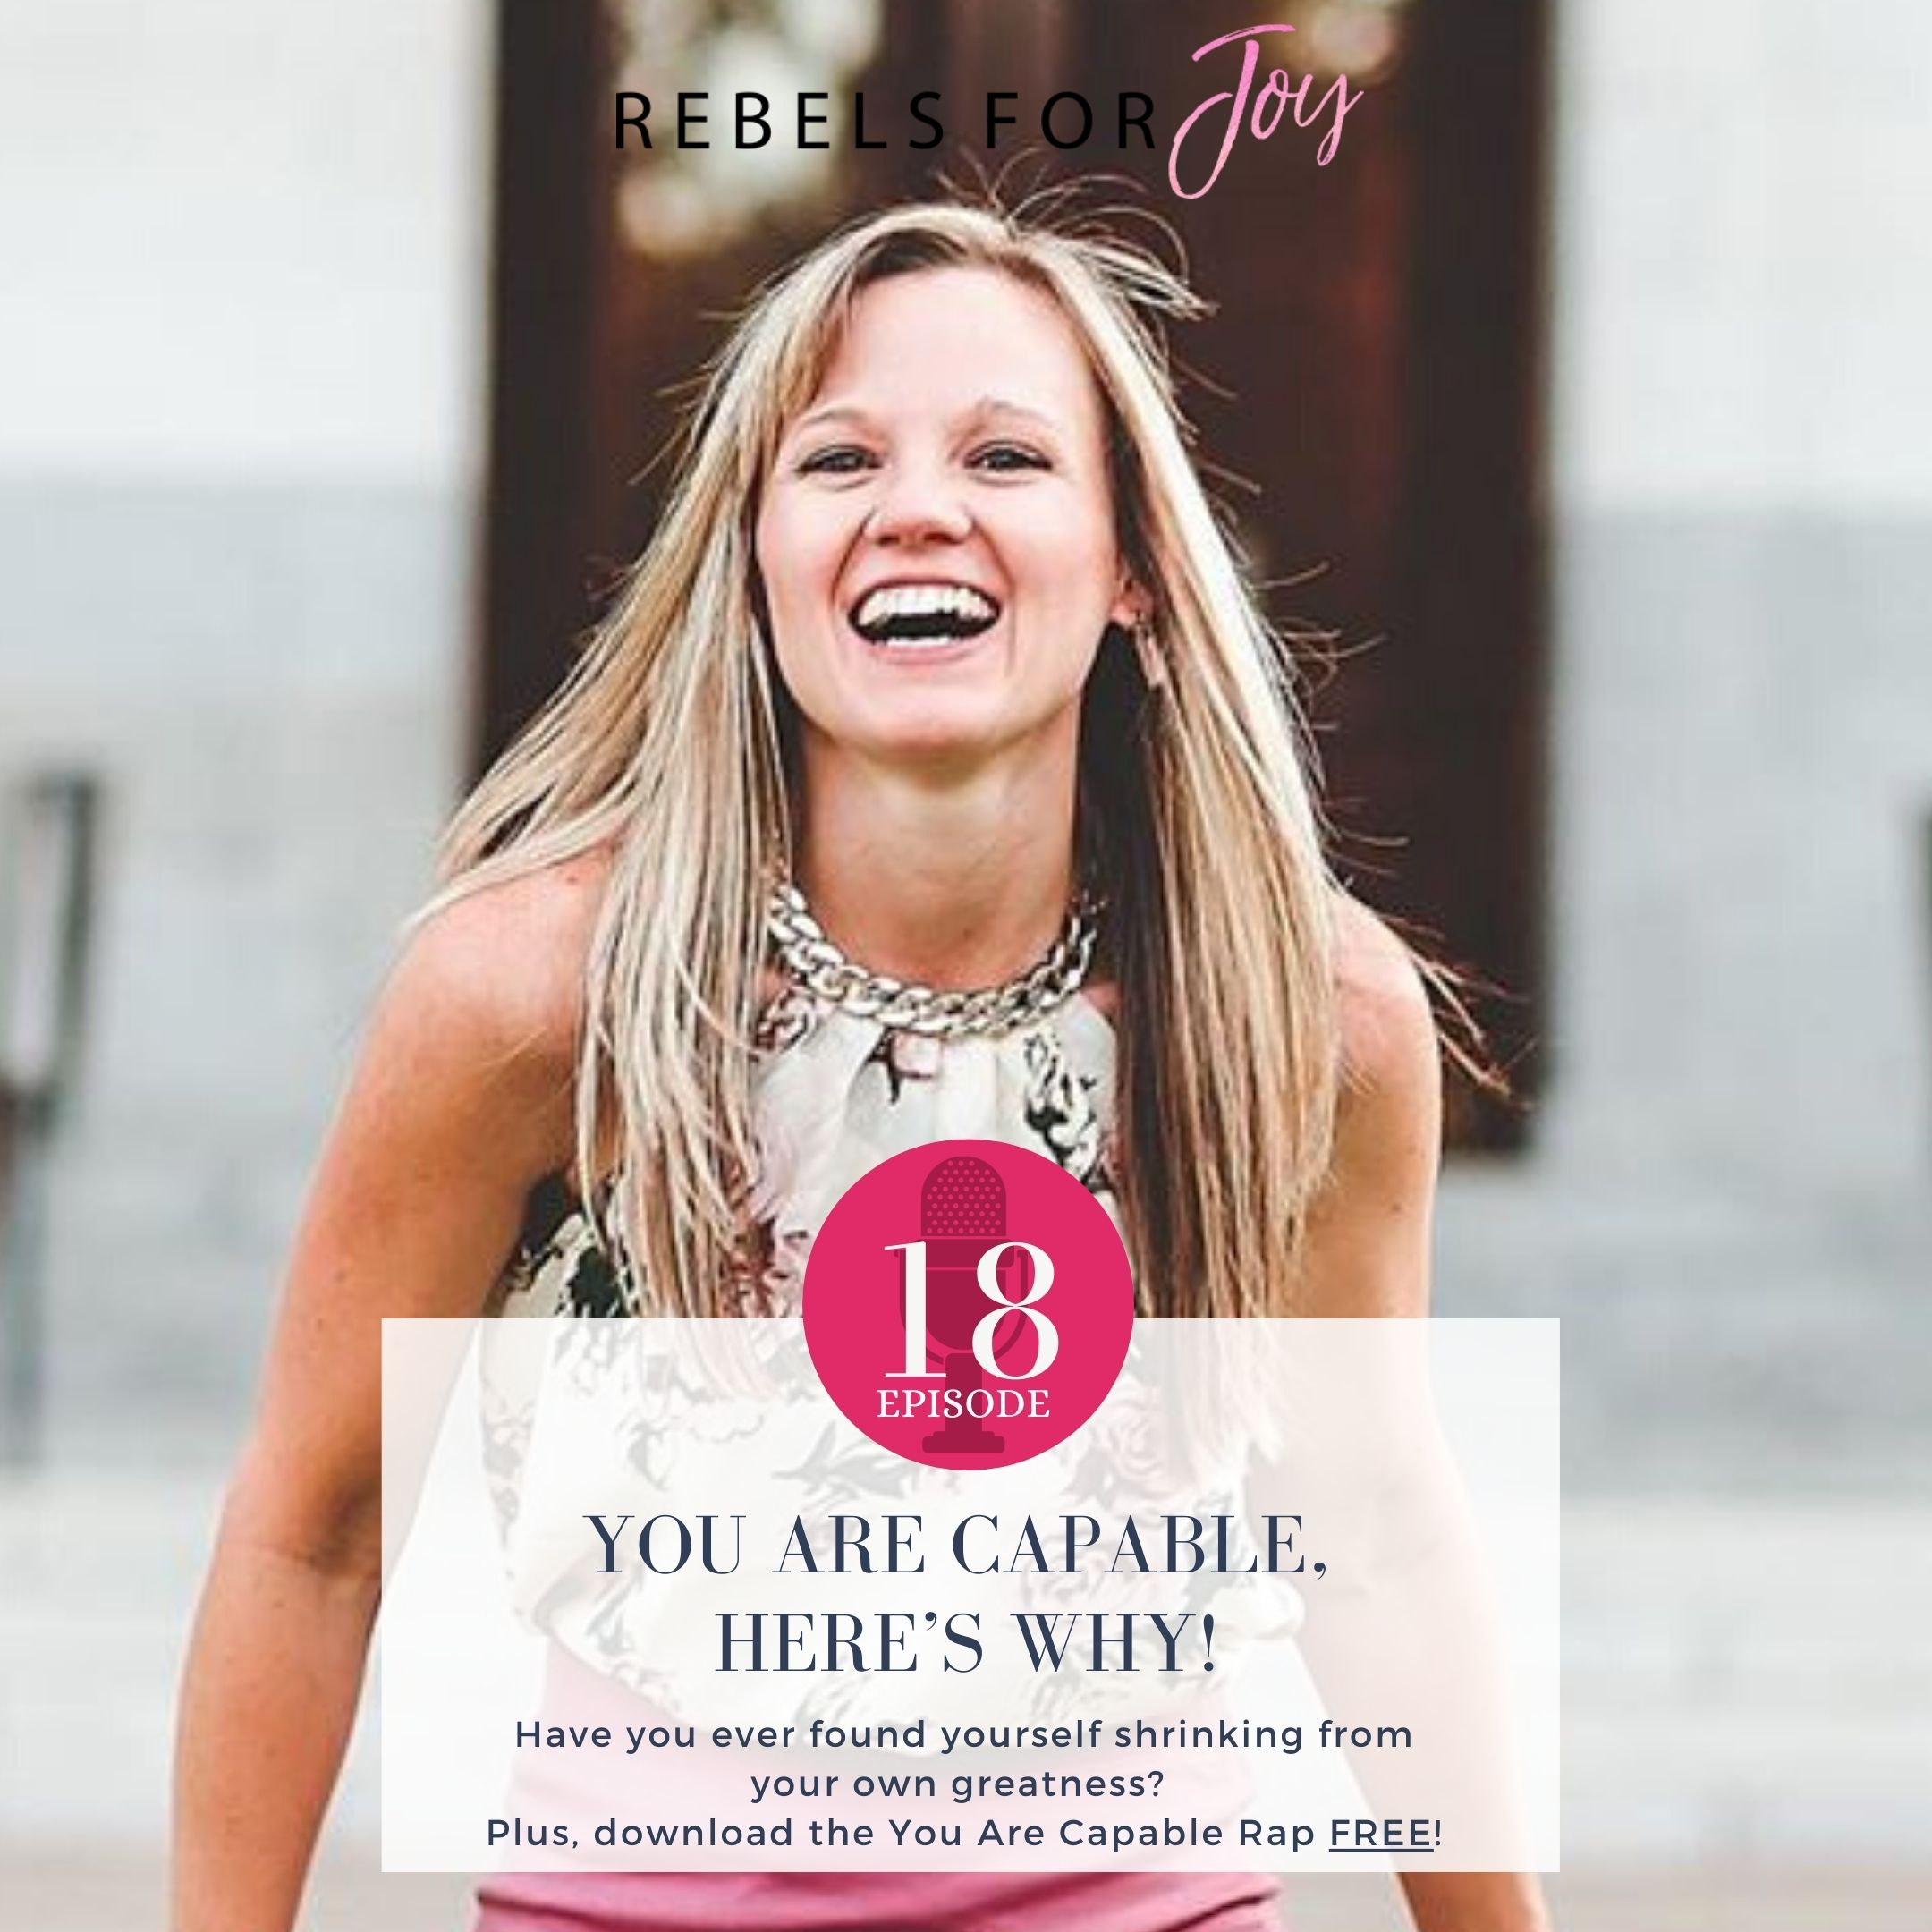 Episode 18: You Are Capable, Here's why!